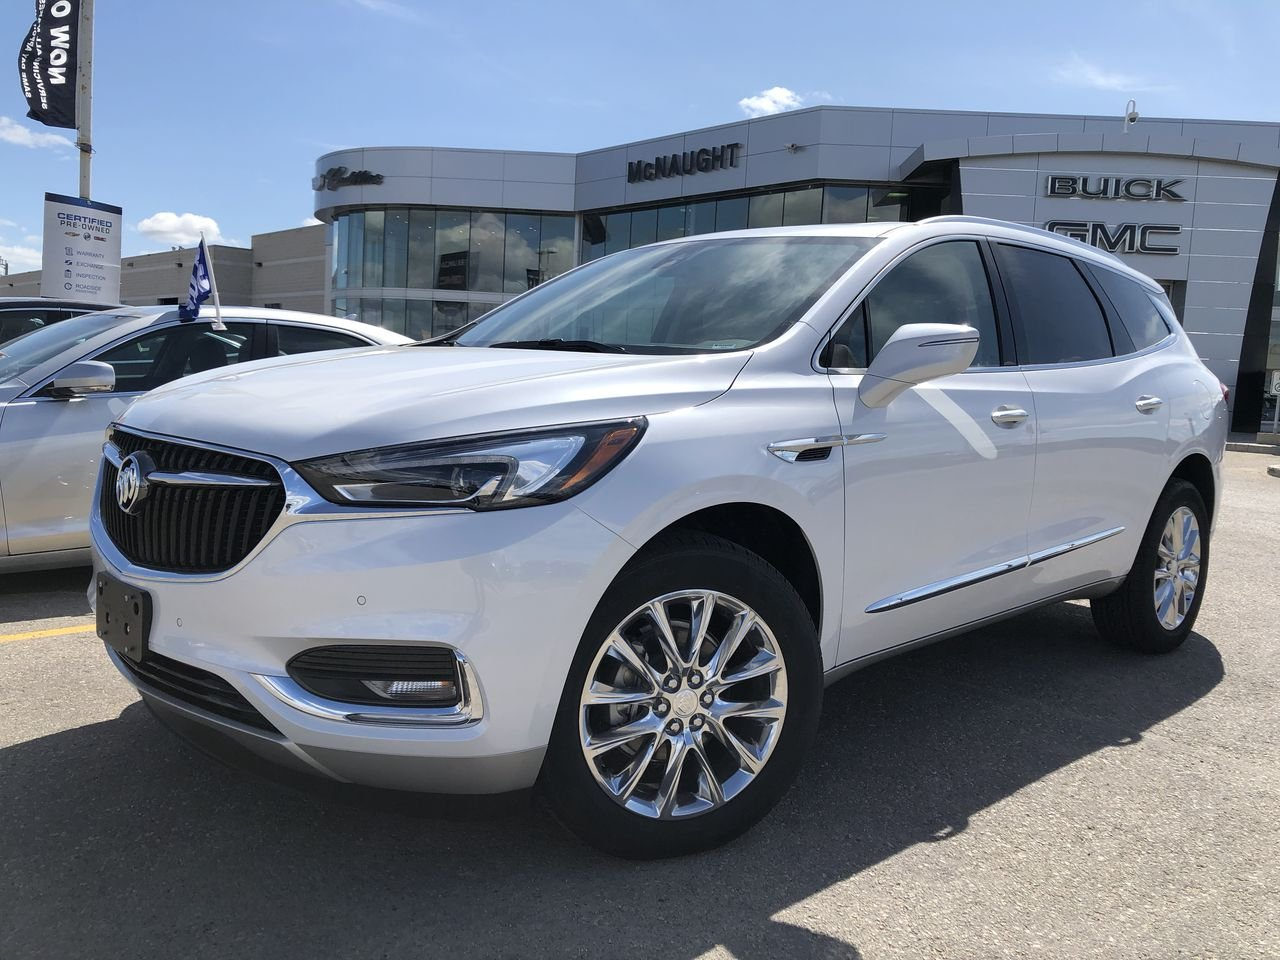 New 2020 Buick Enclave Premium New 2022 Buick Enclave Length, Leather, Lease Price